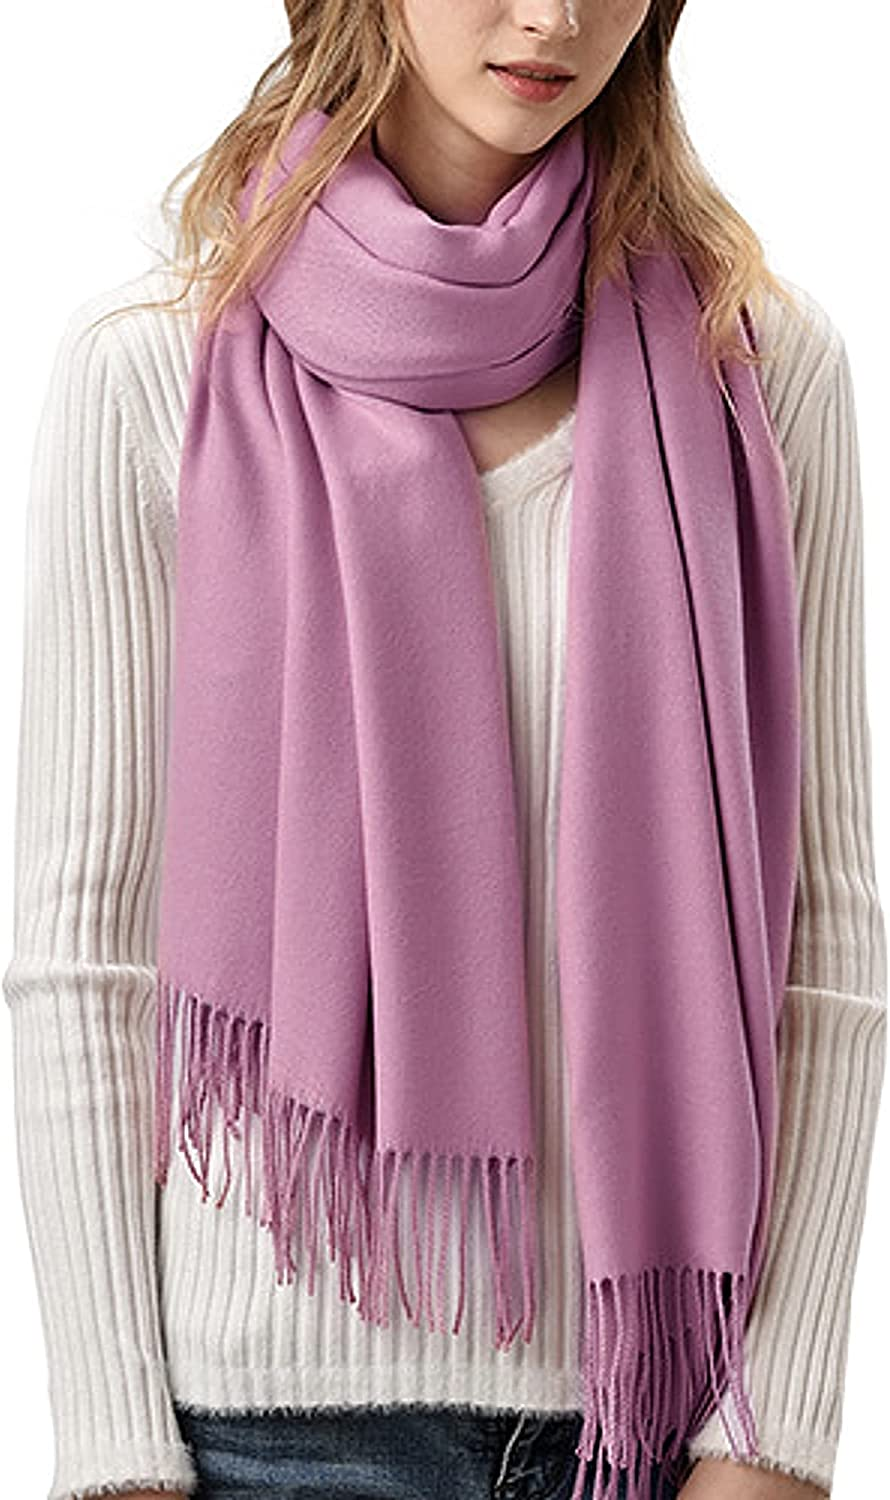 Roll Up Unisex Cashmere Soft Luxurious Cozy Long Winter Scarf Wrap Shawl Scarves Blanket